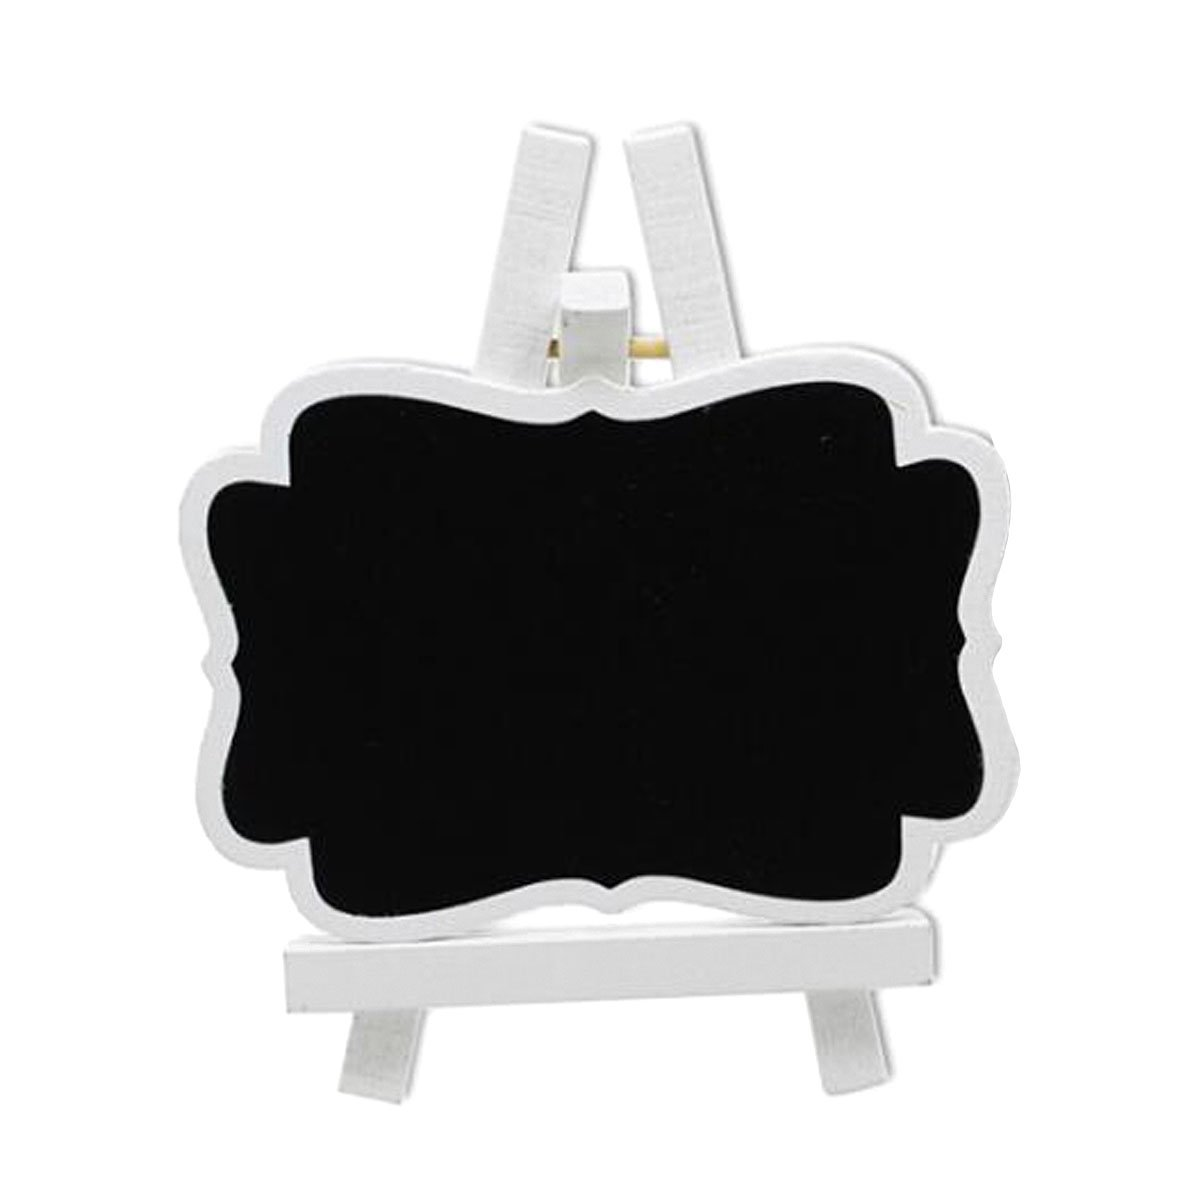 10 Pcs Wooden Home Bracket Mini Small Blackboard with White Wooden Easel - Crafts Wedding Party and Daily Home Decoration Commercial Tabletop Signs Chalkboards Message Board Prop Decoration (Large)